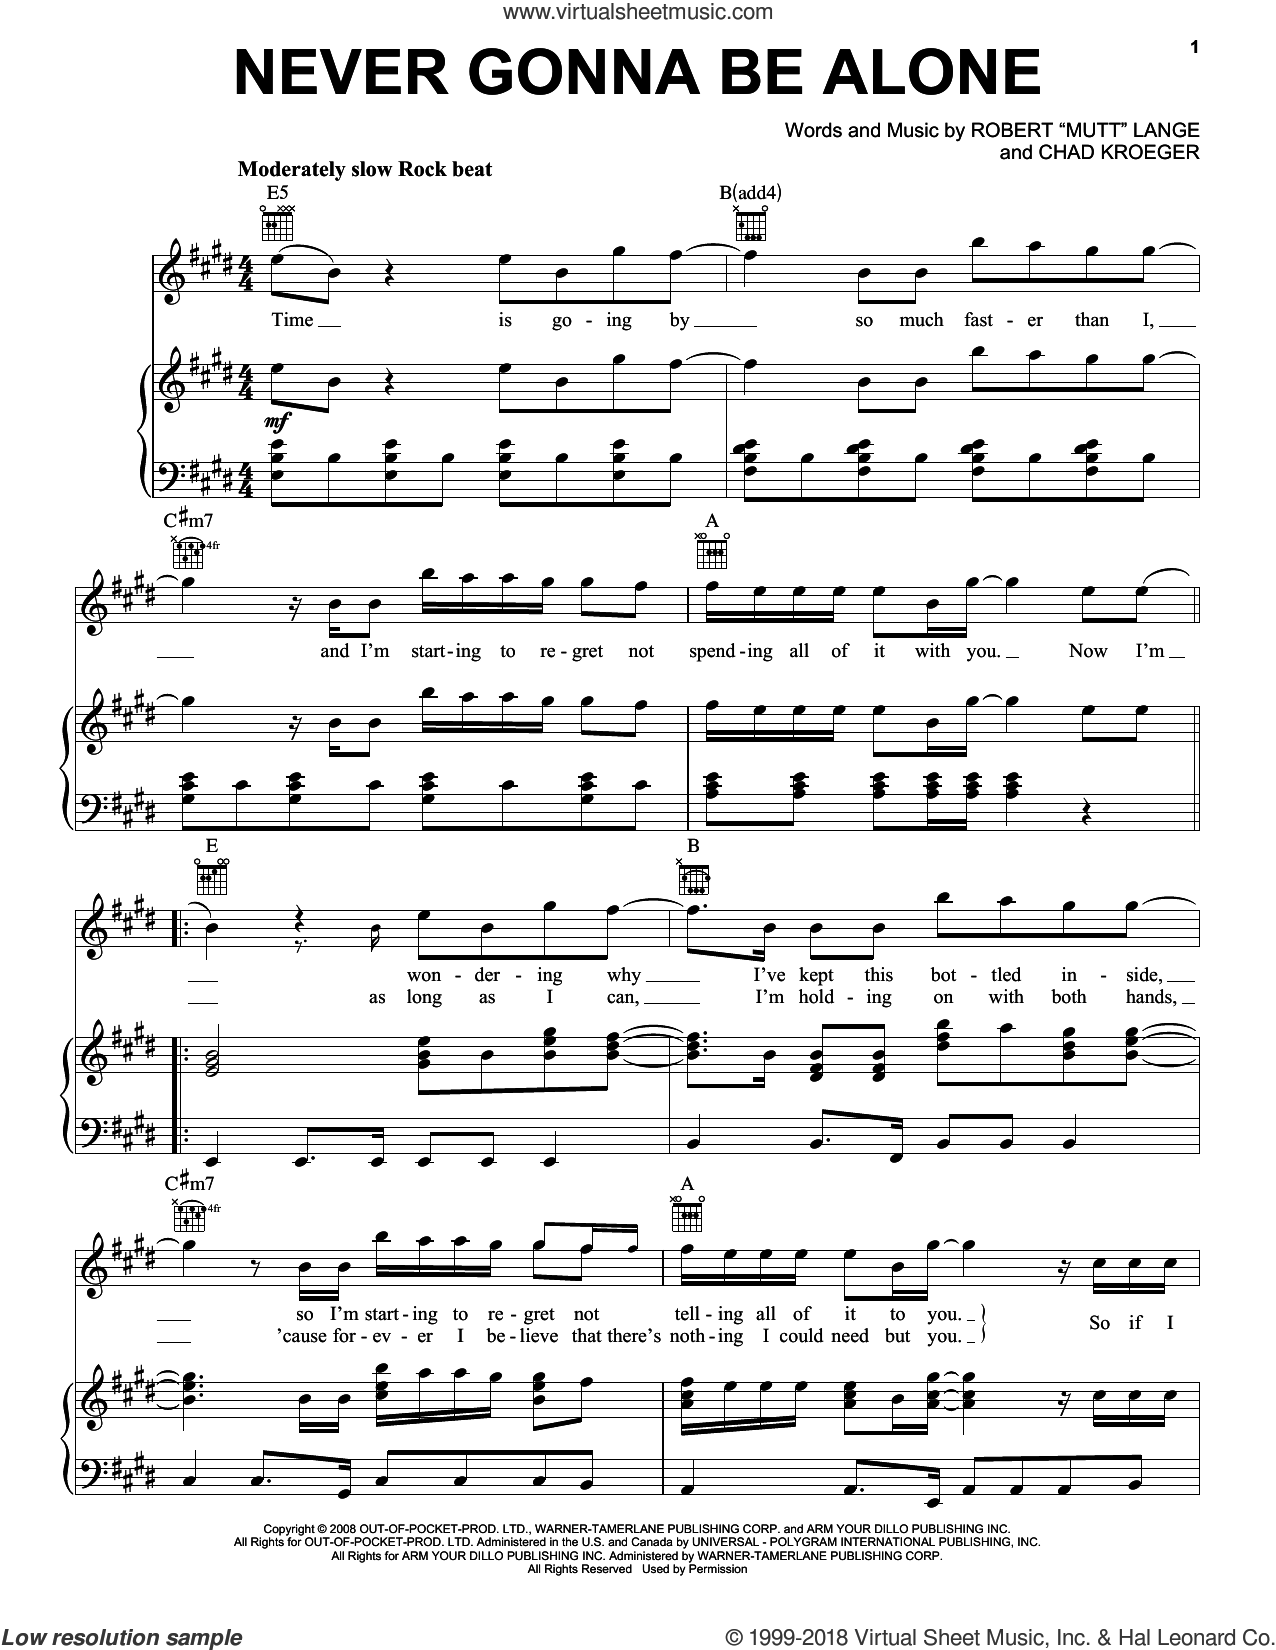 Never Gonna Be Alone sheet music for voice, piano or guitar by Nickelback, Chad Kroeger and Robert 'Mutt' Lange, wedding score, intermediate skill level